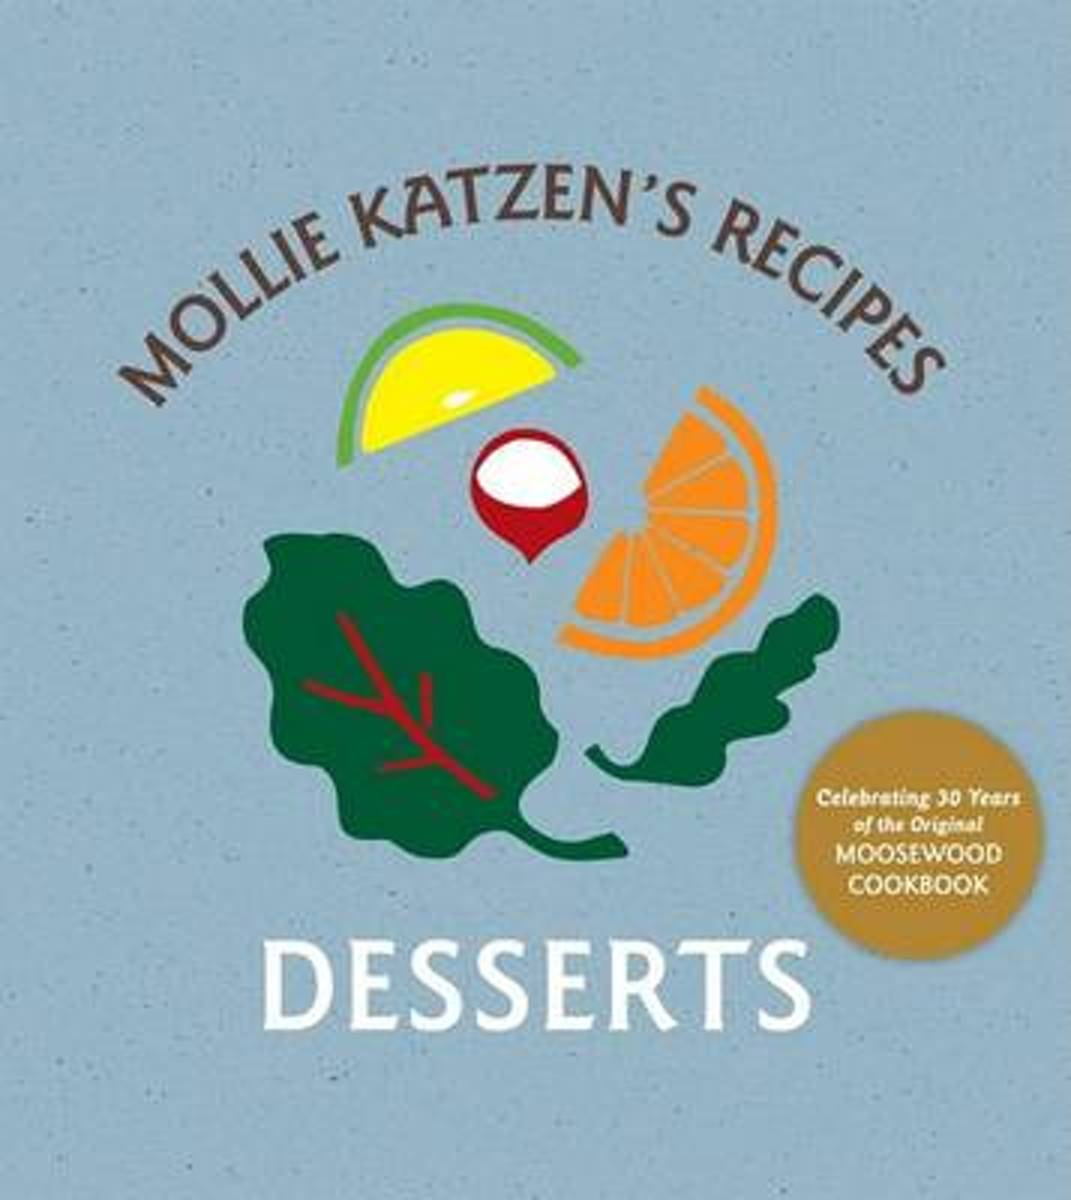 Mollie Katzen's Recipes Desserts